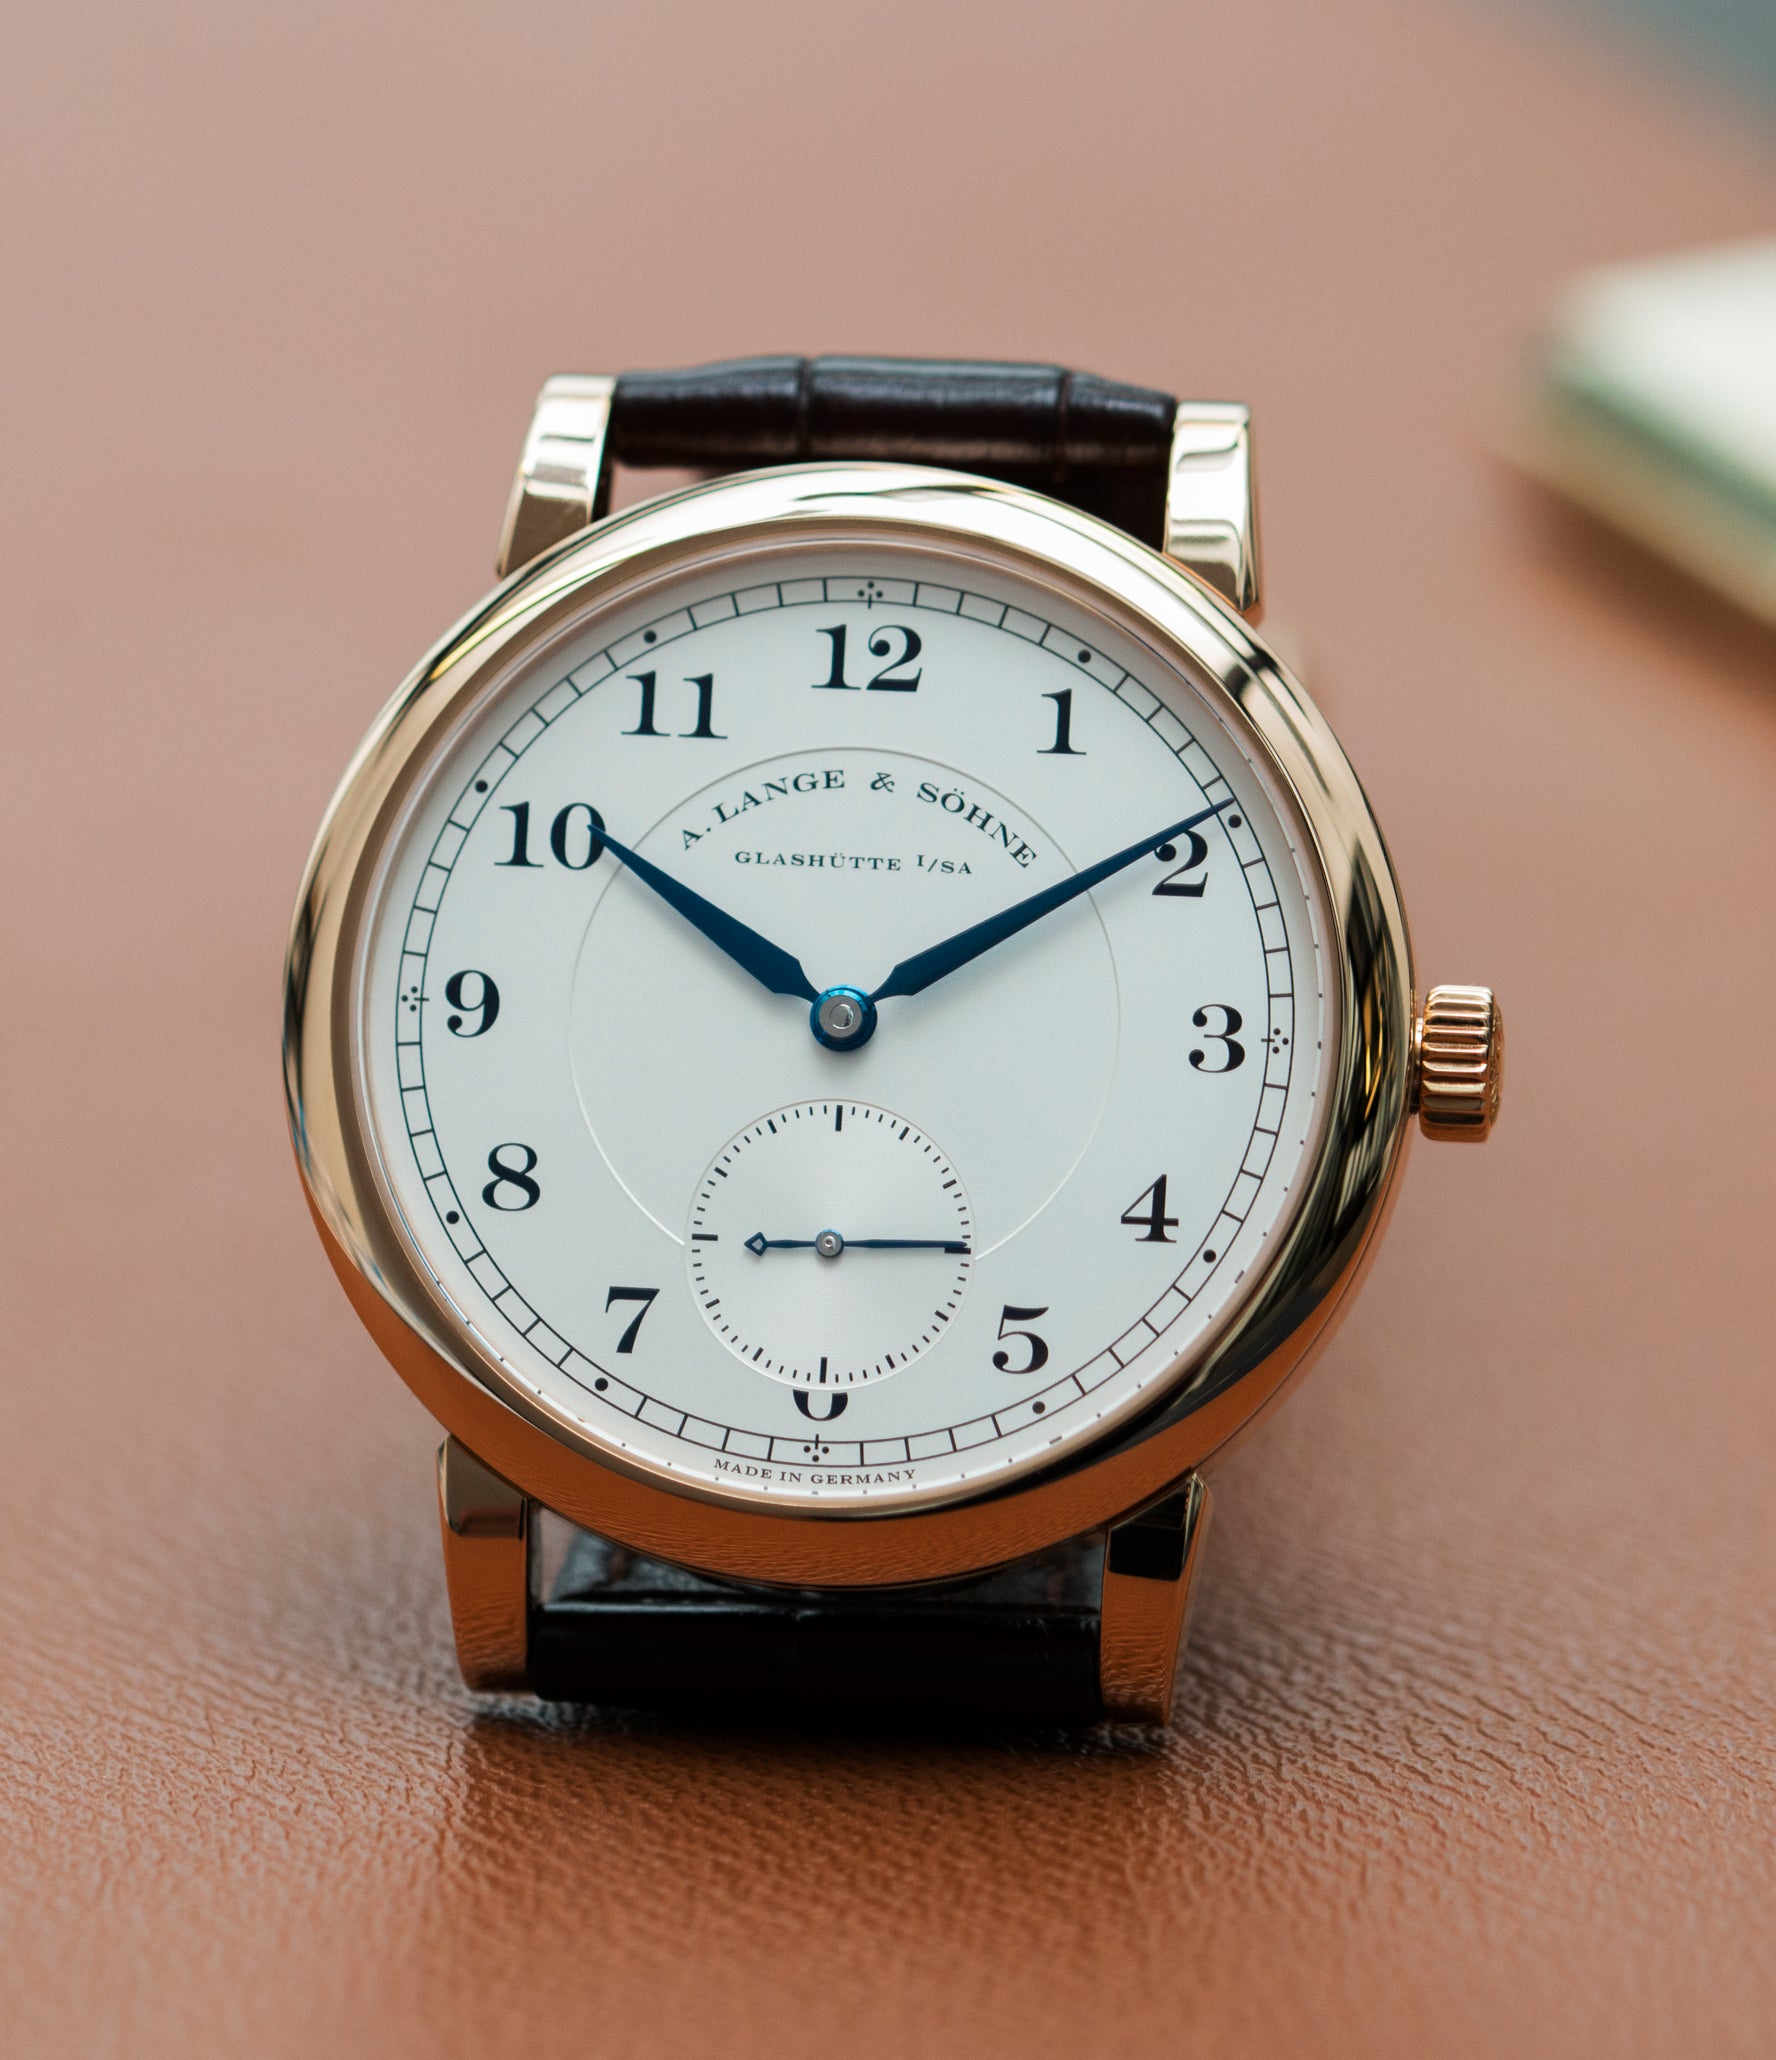 selling A. Lange & Sohne 1815 233.032 rose gold pre-owned dress watch for sale online at A Collected Man London Uk specialist of preowned luxury watches